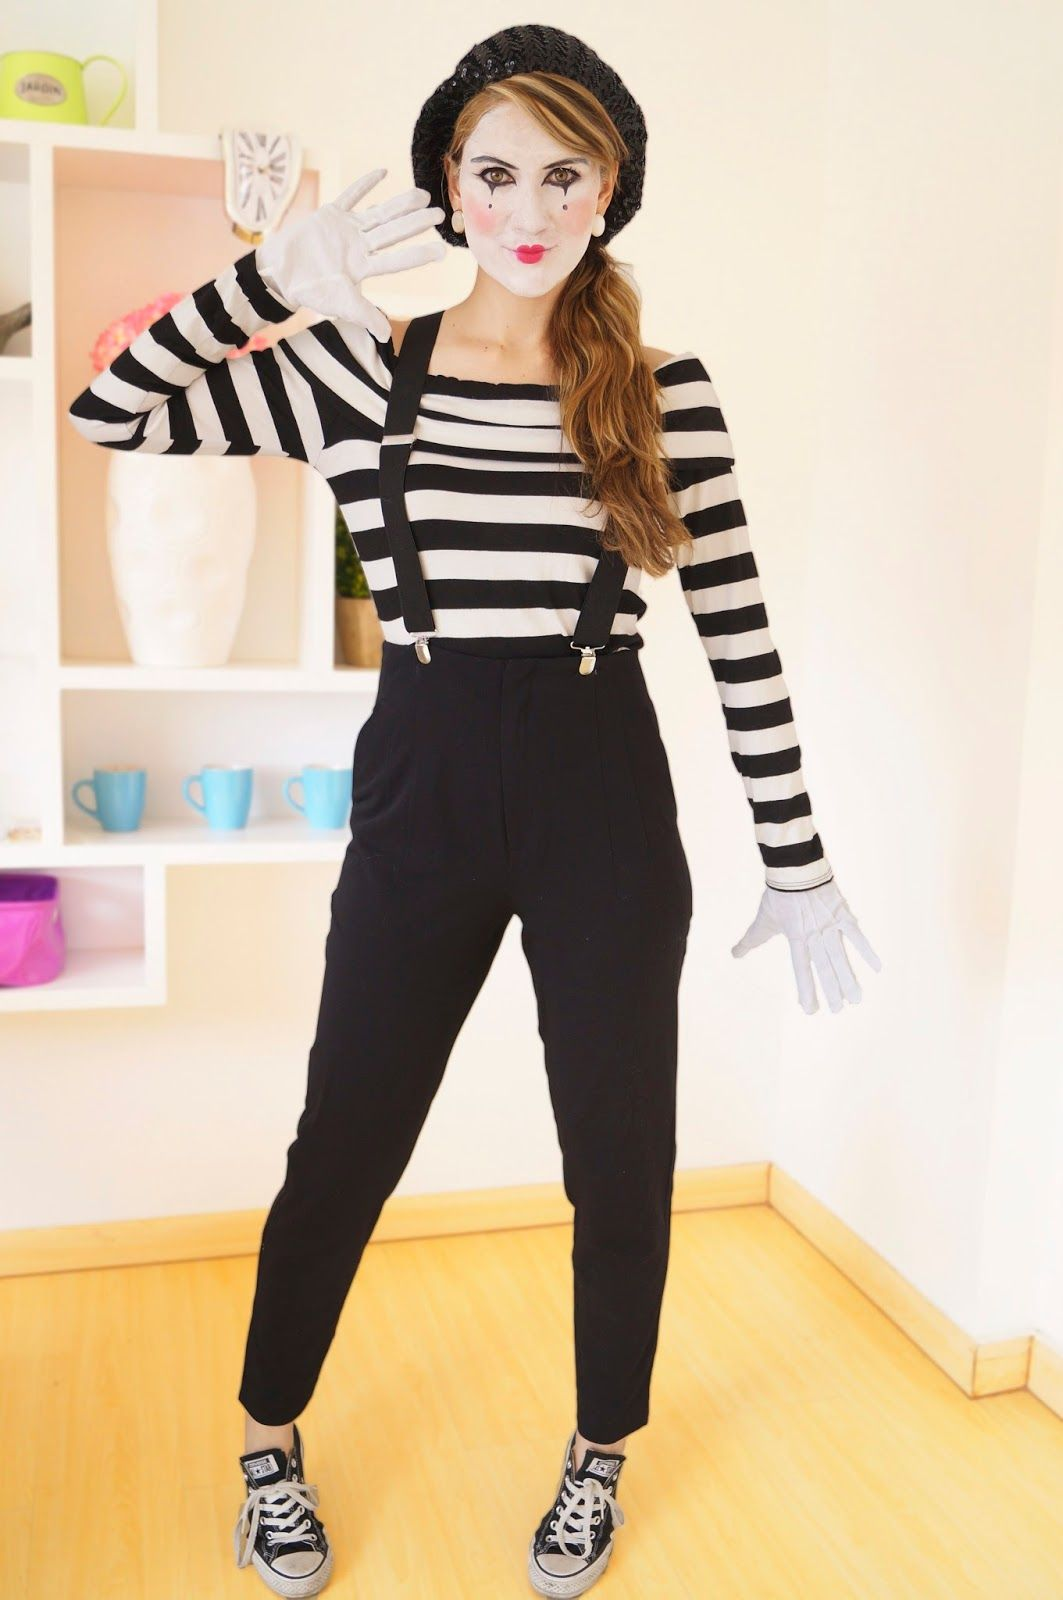 mime costume tutorial art pinterest fasching kost m. Black Bedroom Furniture Sets. Home Design Ideas